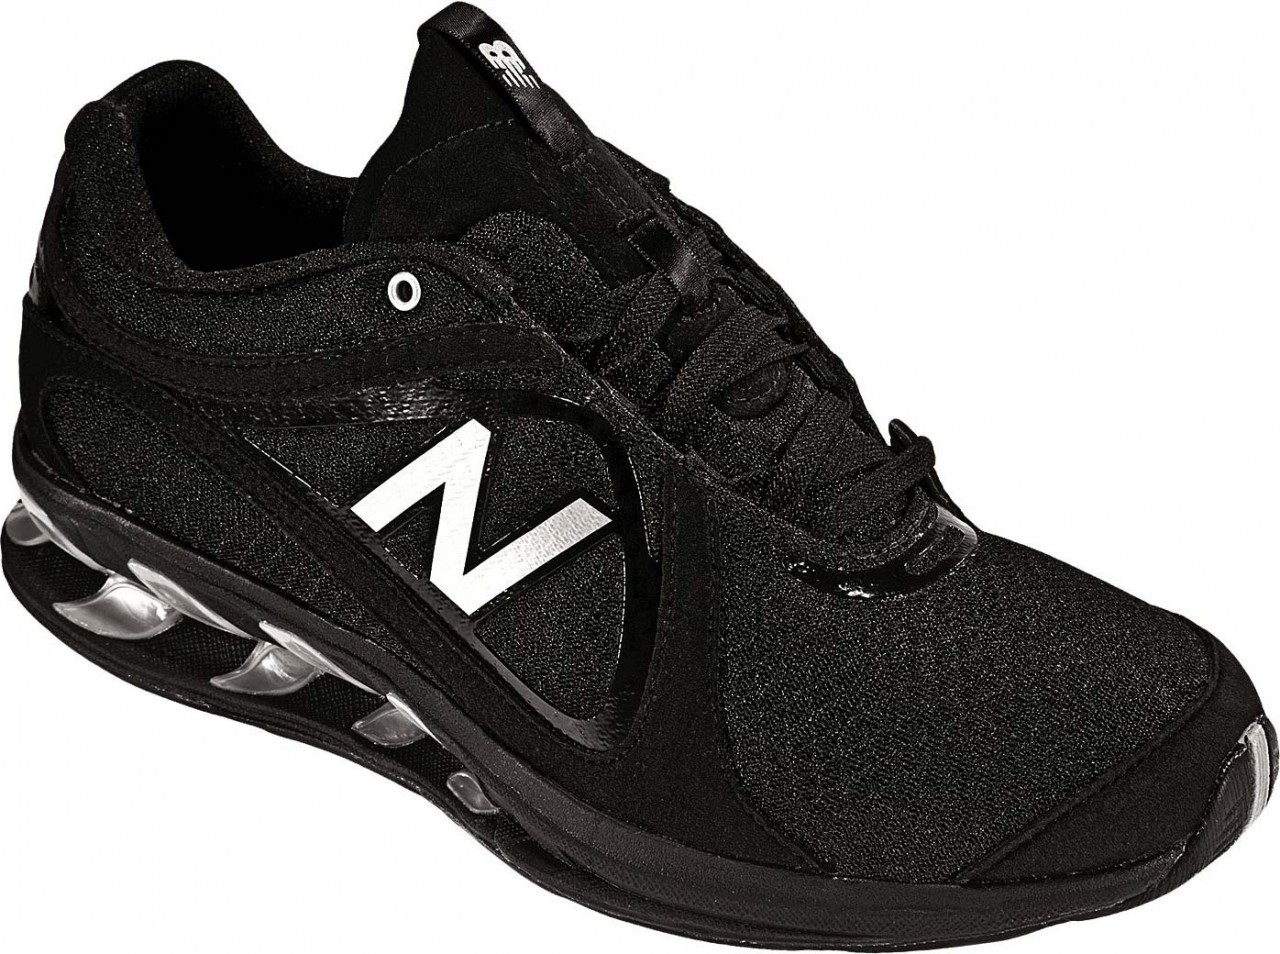 Find your favorite New Balance shoes, clothes & accessories at outlet prices. Shop the official online New Balance Outlet & save up to 70% today. Free Shipping on orders over $